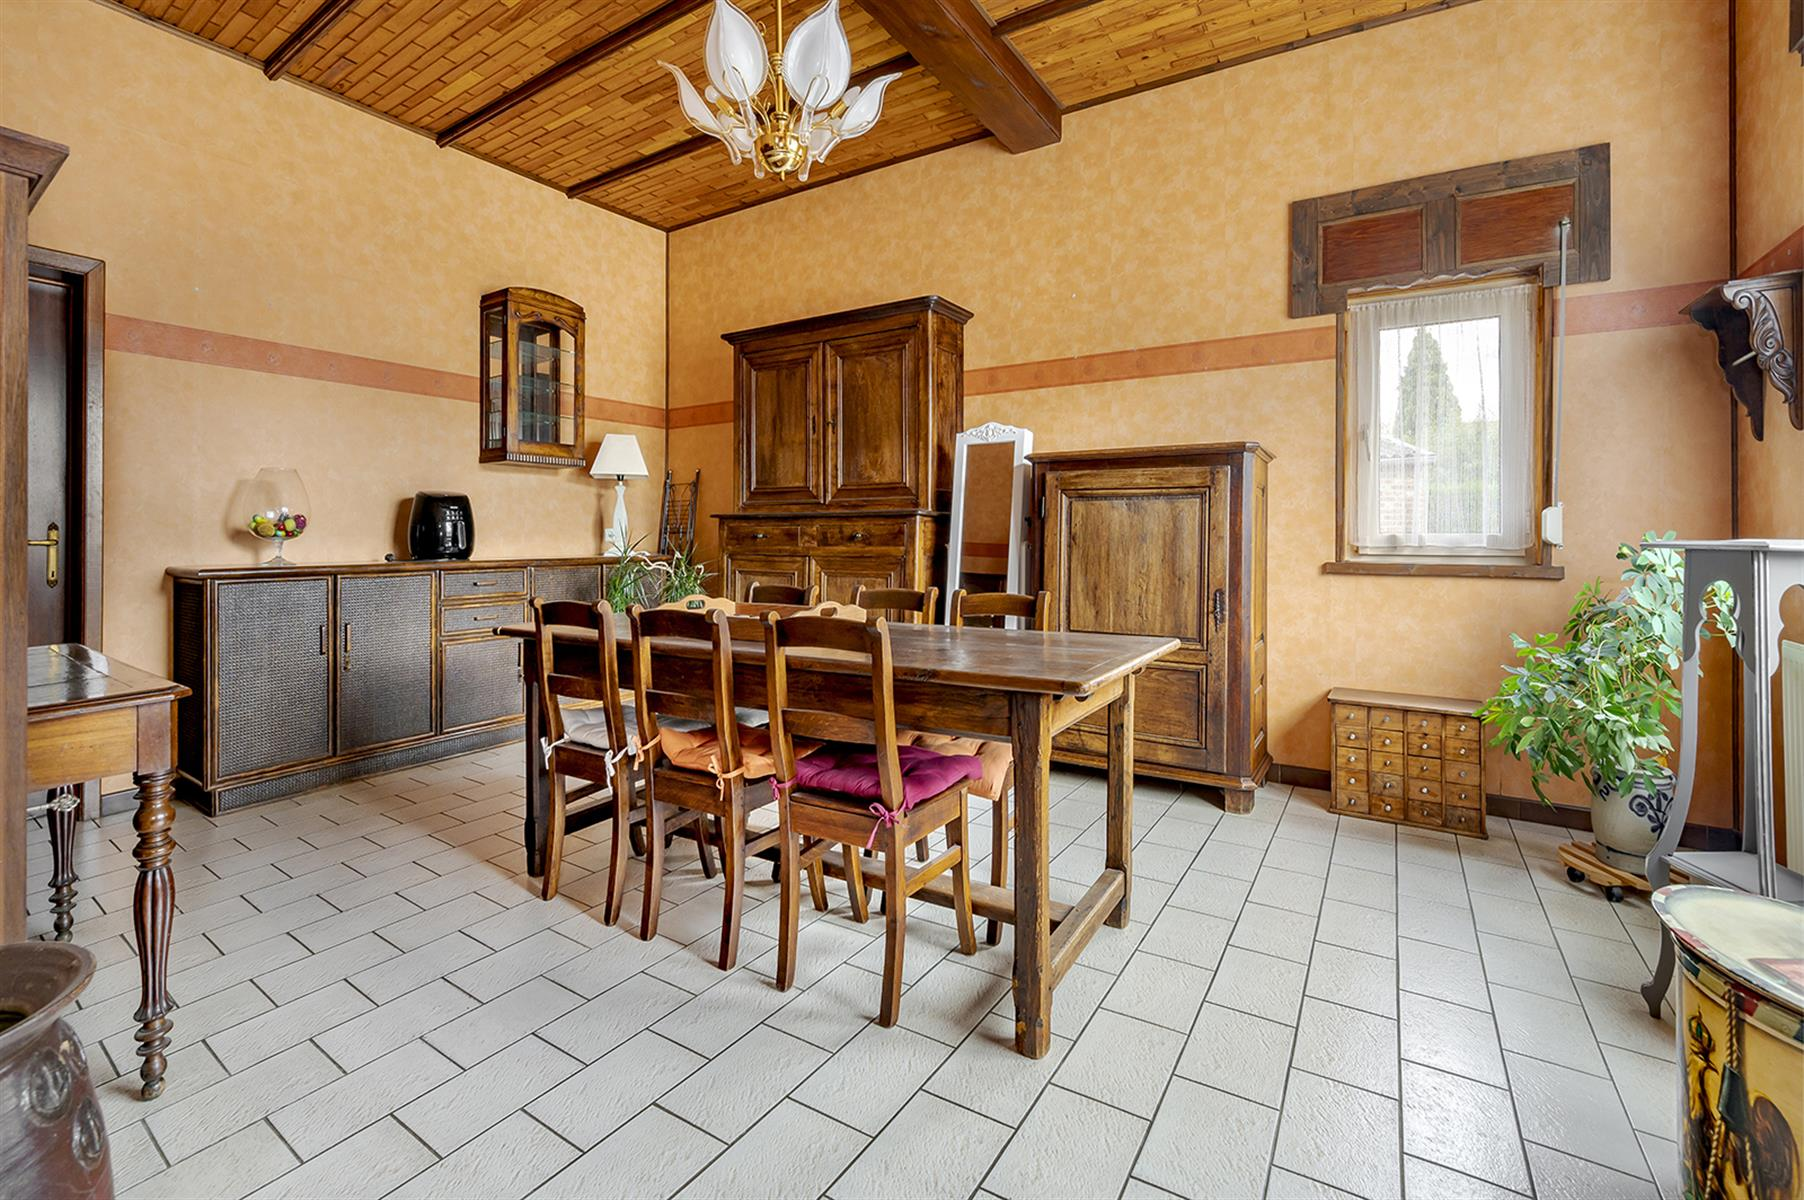 Maison - Remicourt Hodeige - #4174779-4